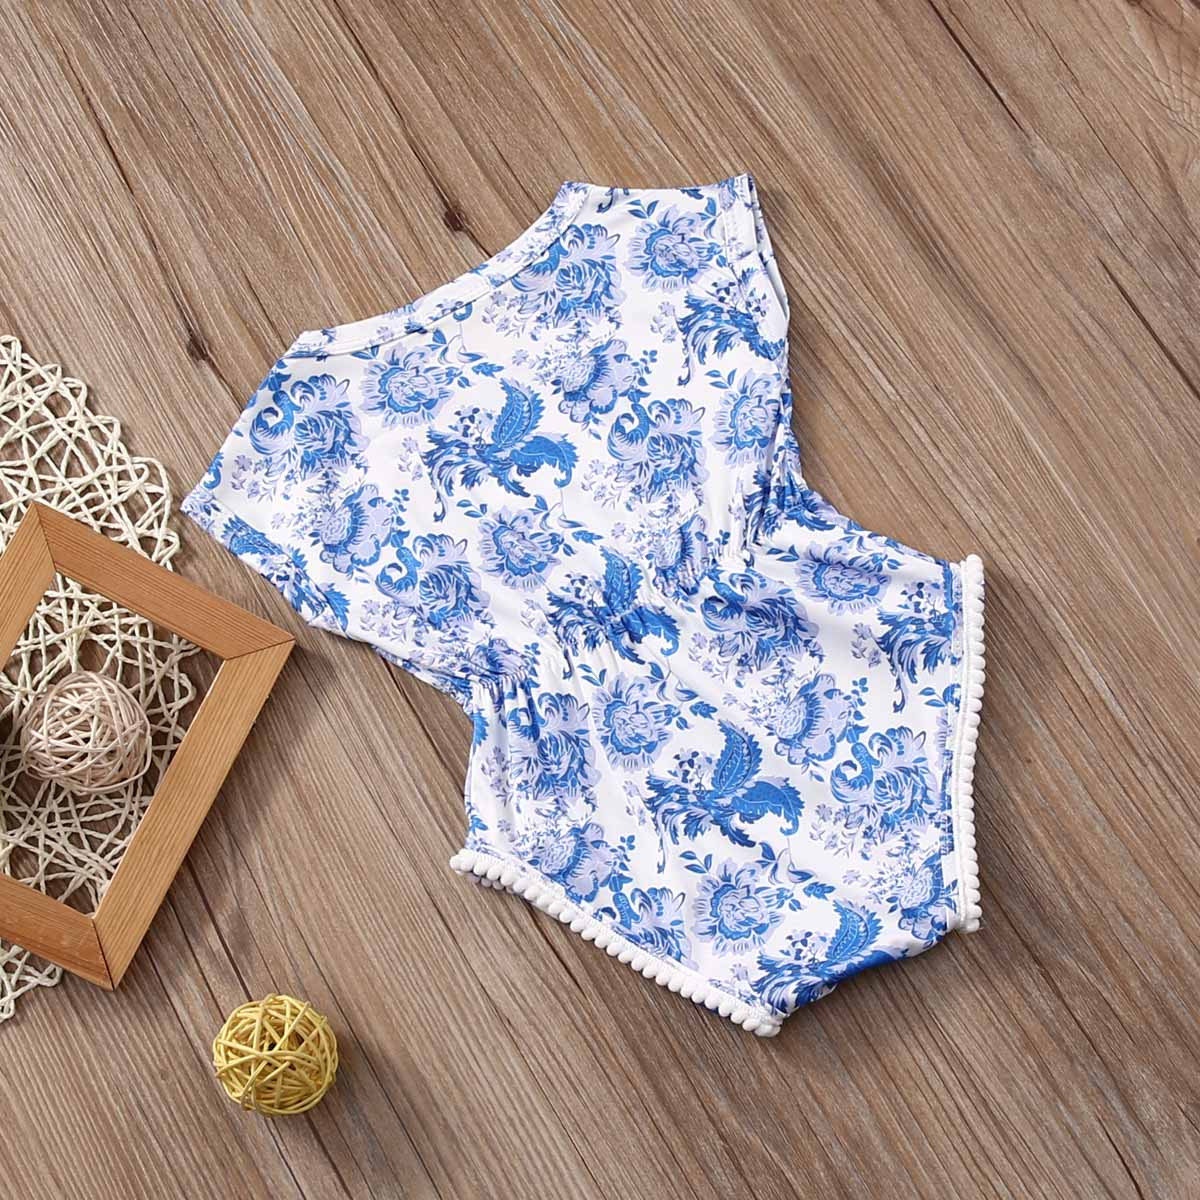 cf141e7f65e1 Infant Newborn Baby Floral blue and white china Short Sleeve Bebes Girls  Romper Jumpsuit One Pieces Outfits-in Bodysuits from Mother   Kids on ...